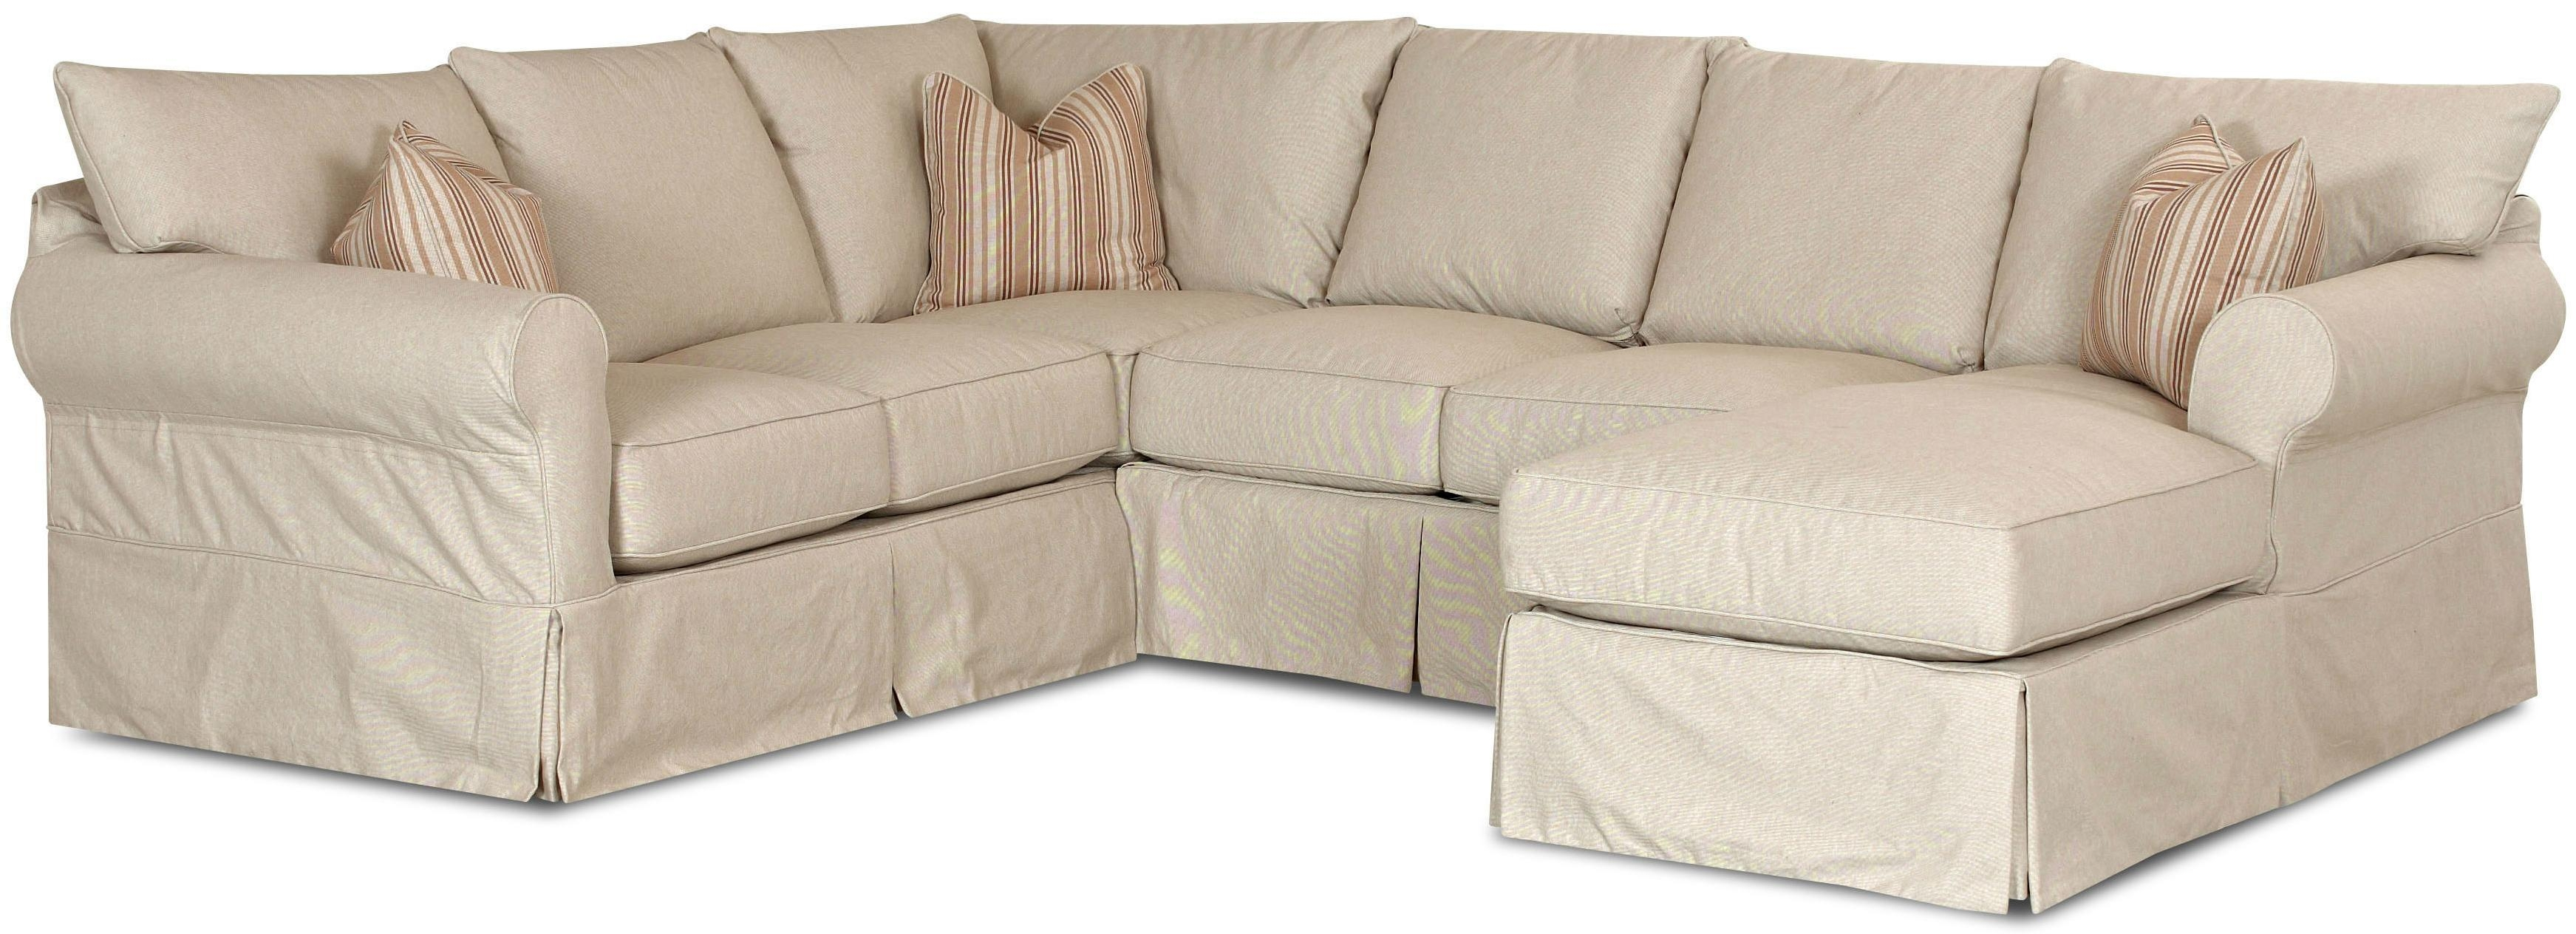 Inspirations: Interesting Furniture Sectional Sofa Slipcovers For For Chaise Sectional Slipcover (View 2 of 15)